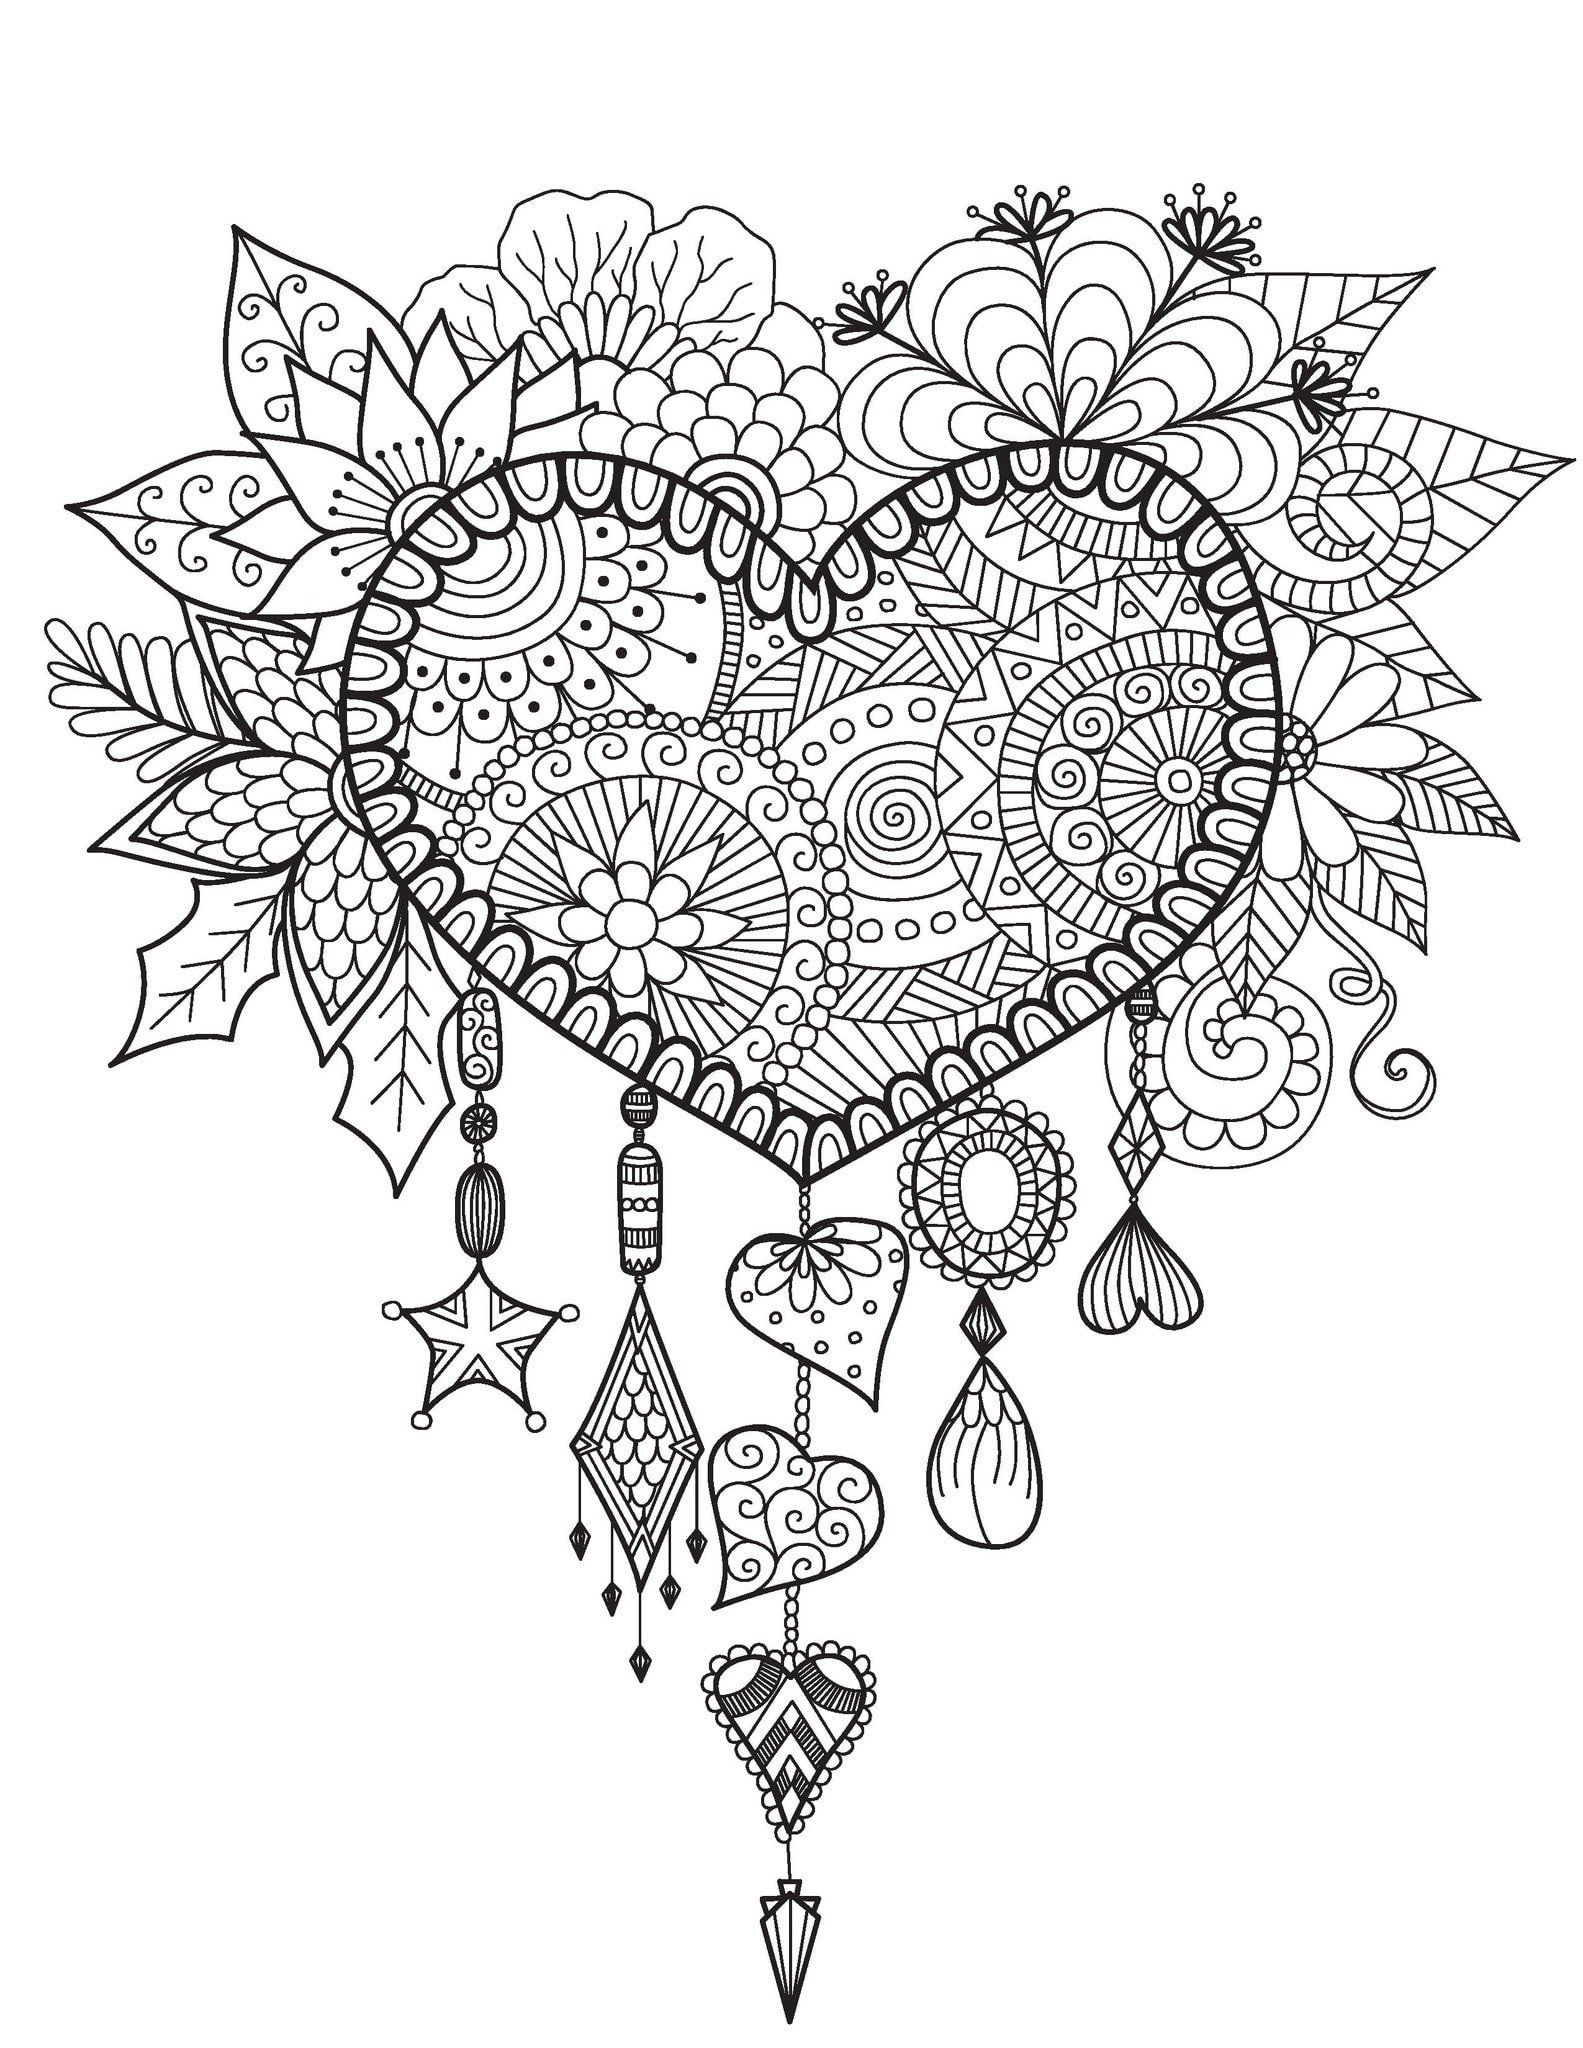 Medium Designs For Adults Who Color Live Your Life In Color Series Heart Coloring Pages Dream Catcher Coloring Pages Mandala Coloring Pages